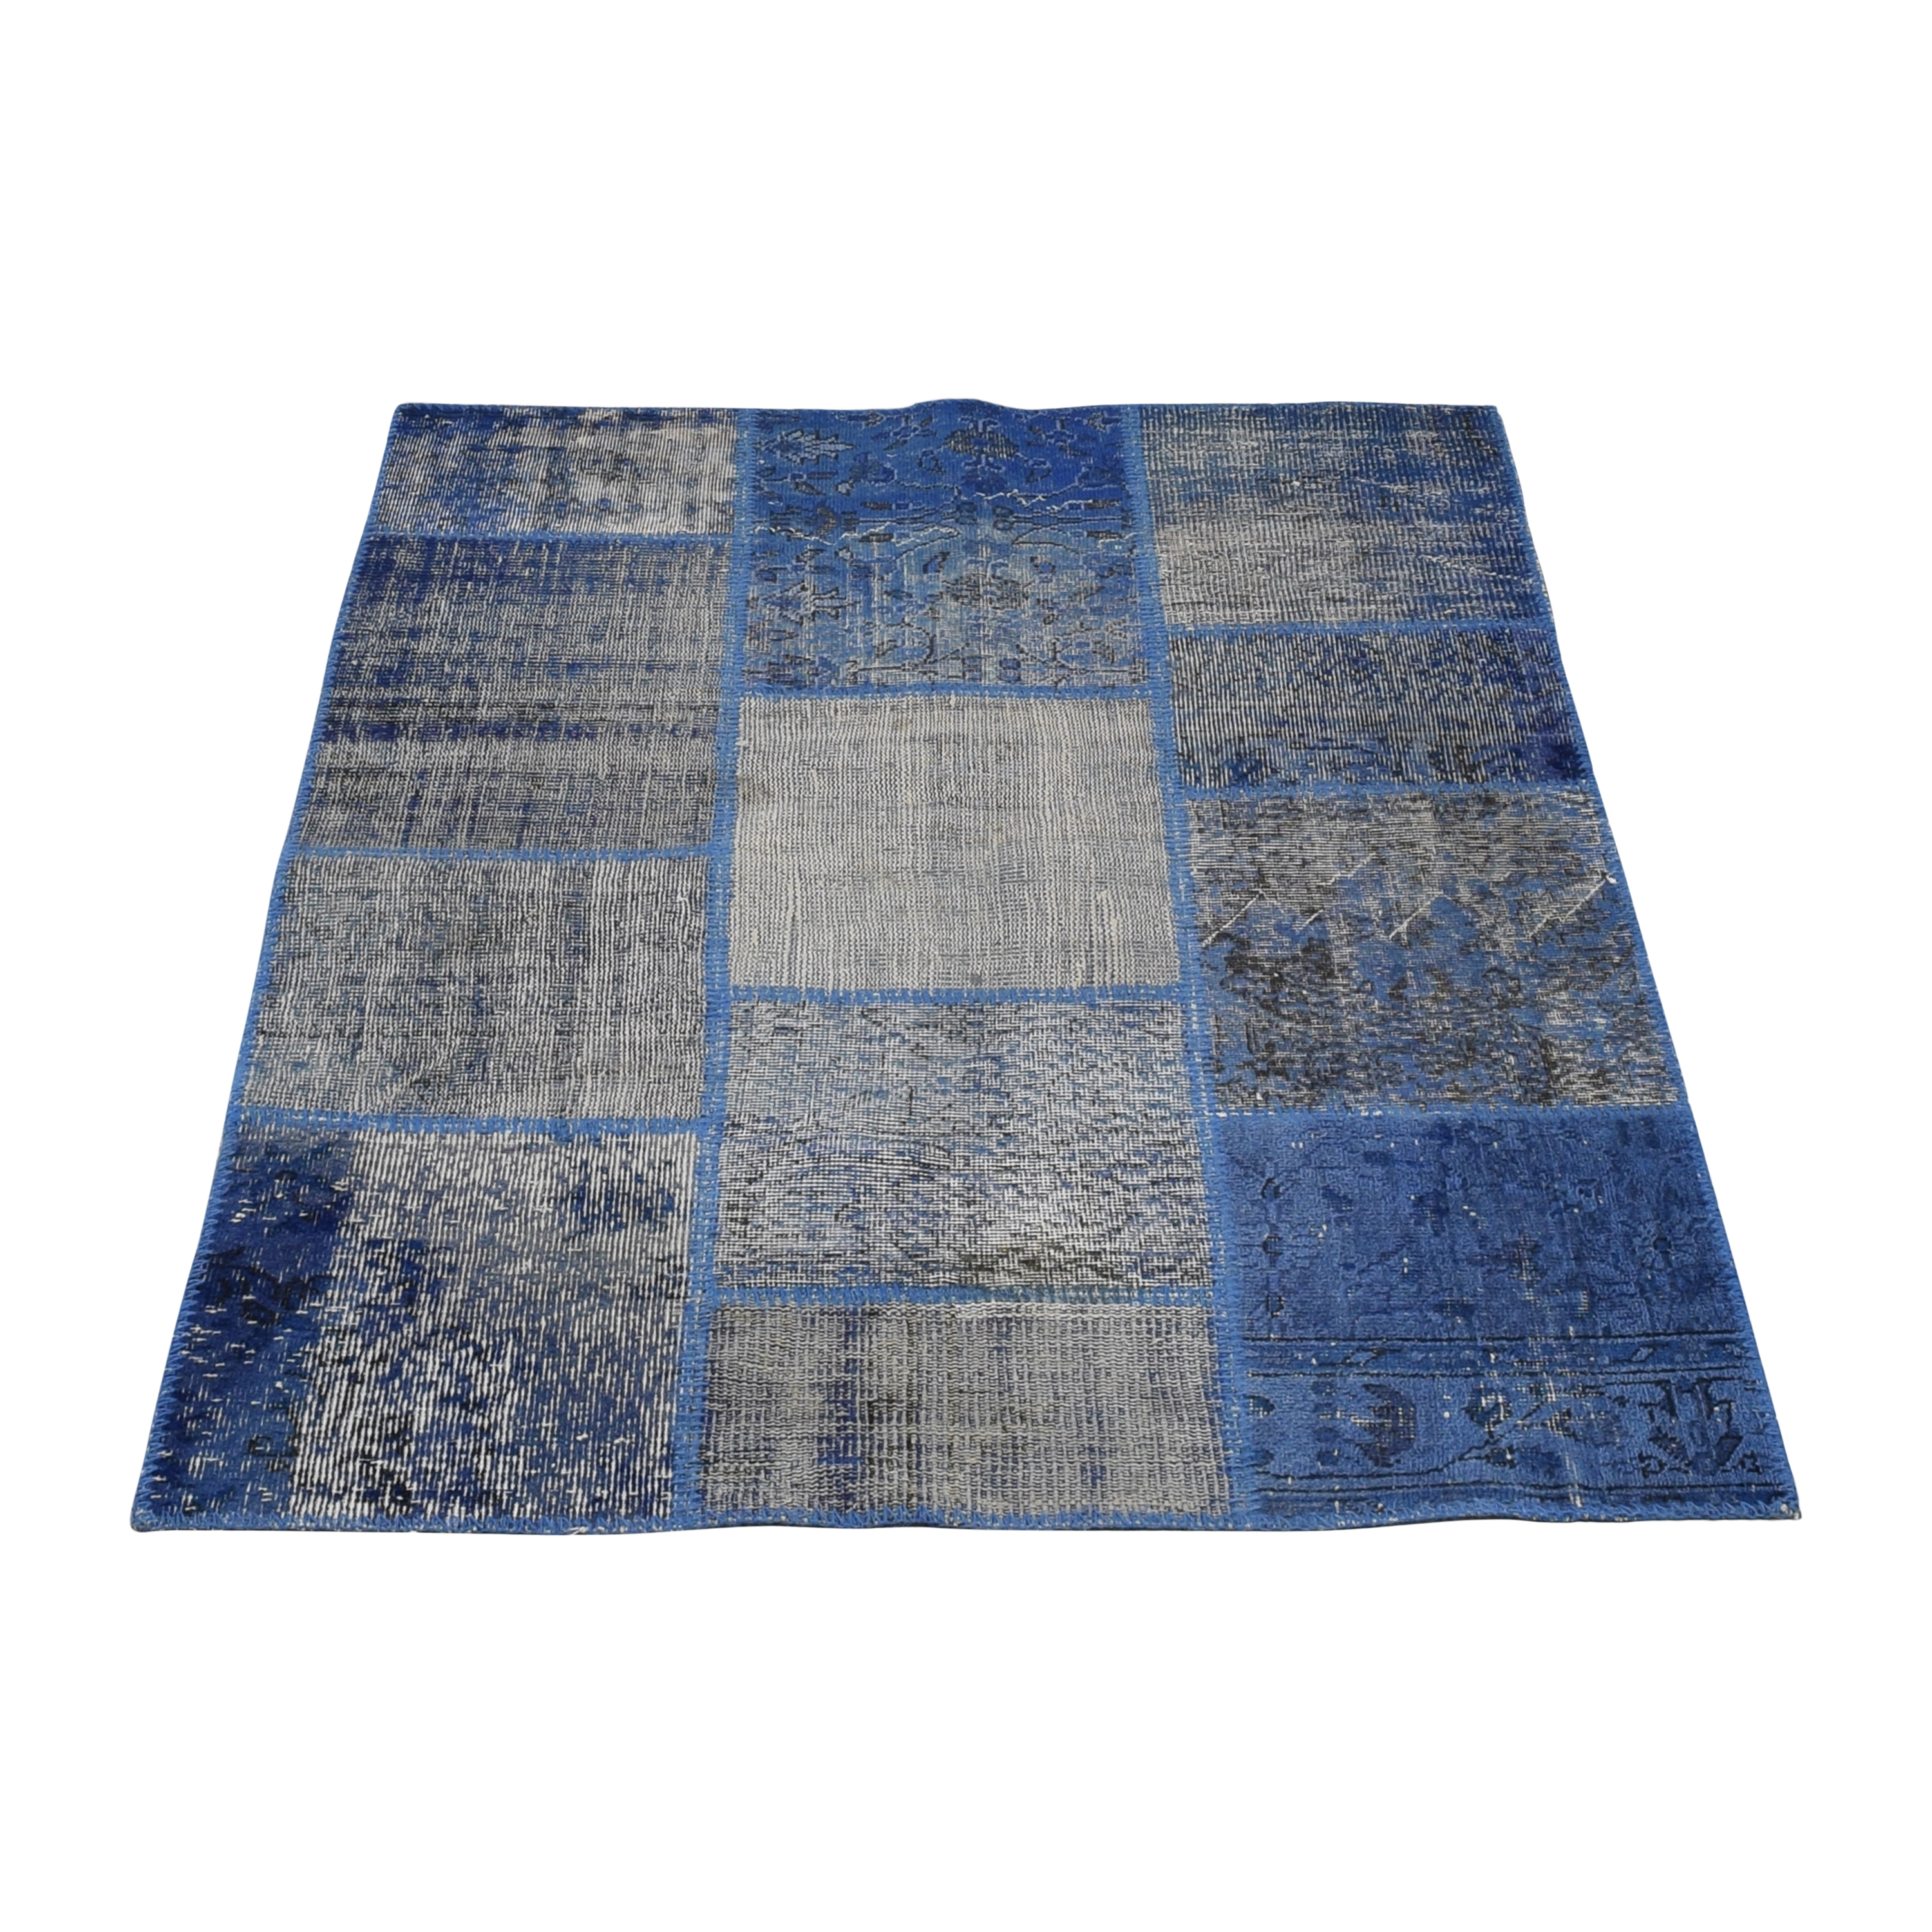 buy ABC Carpet & Home ABC Carpet & Home Overdyed Patchwork Rug online